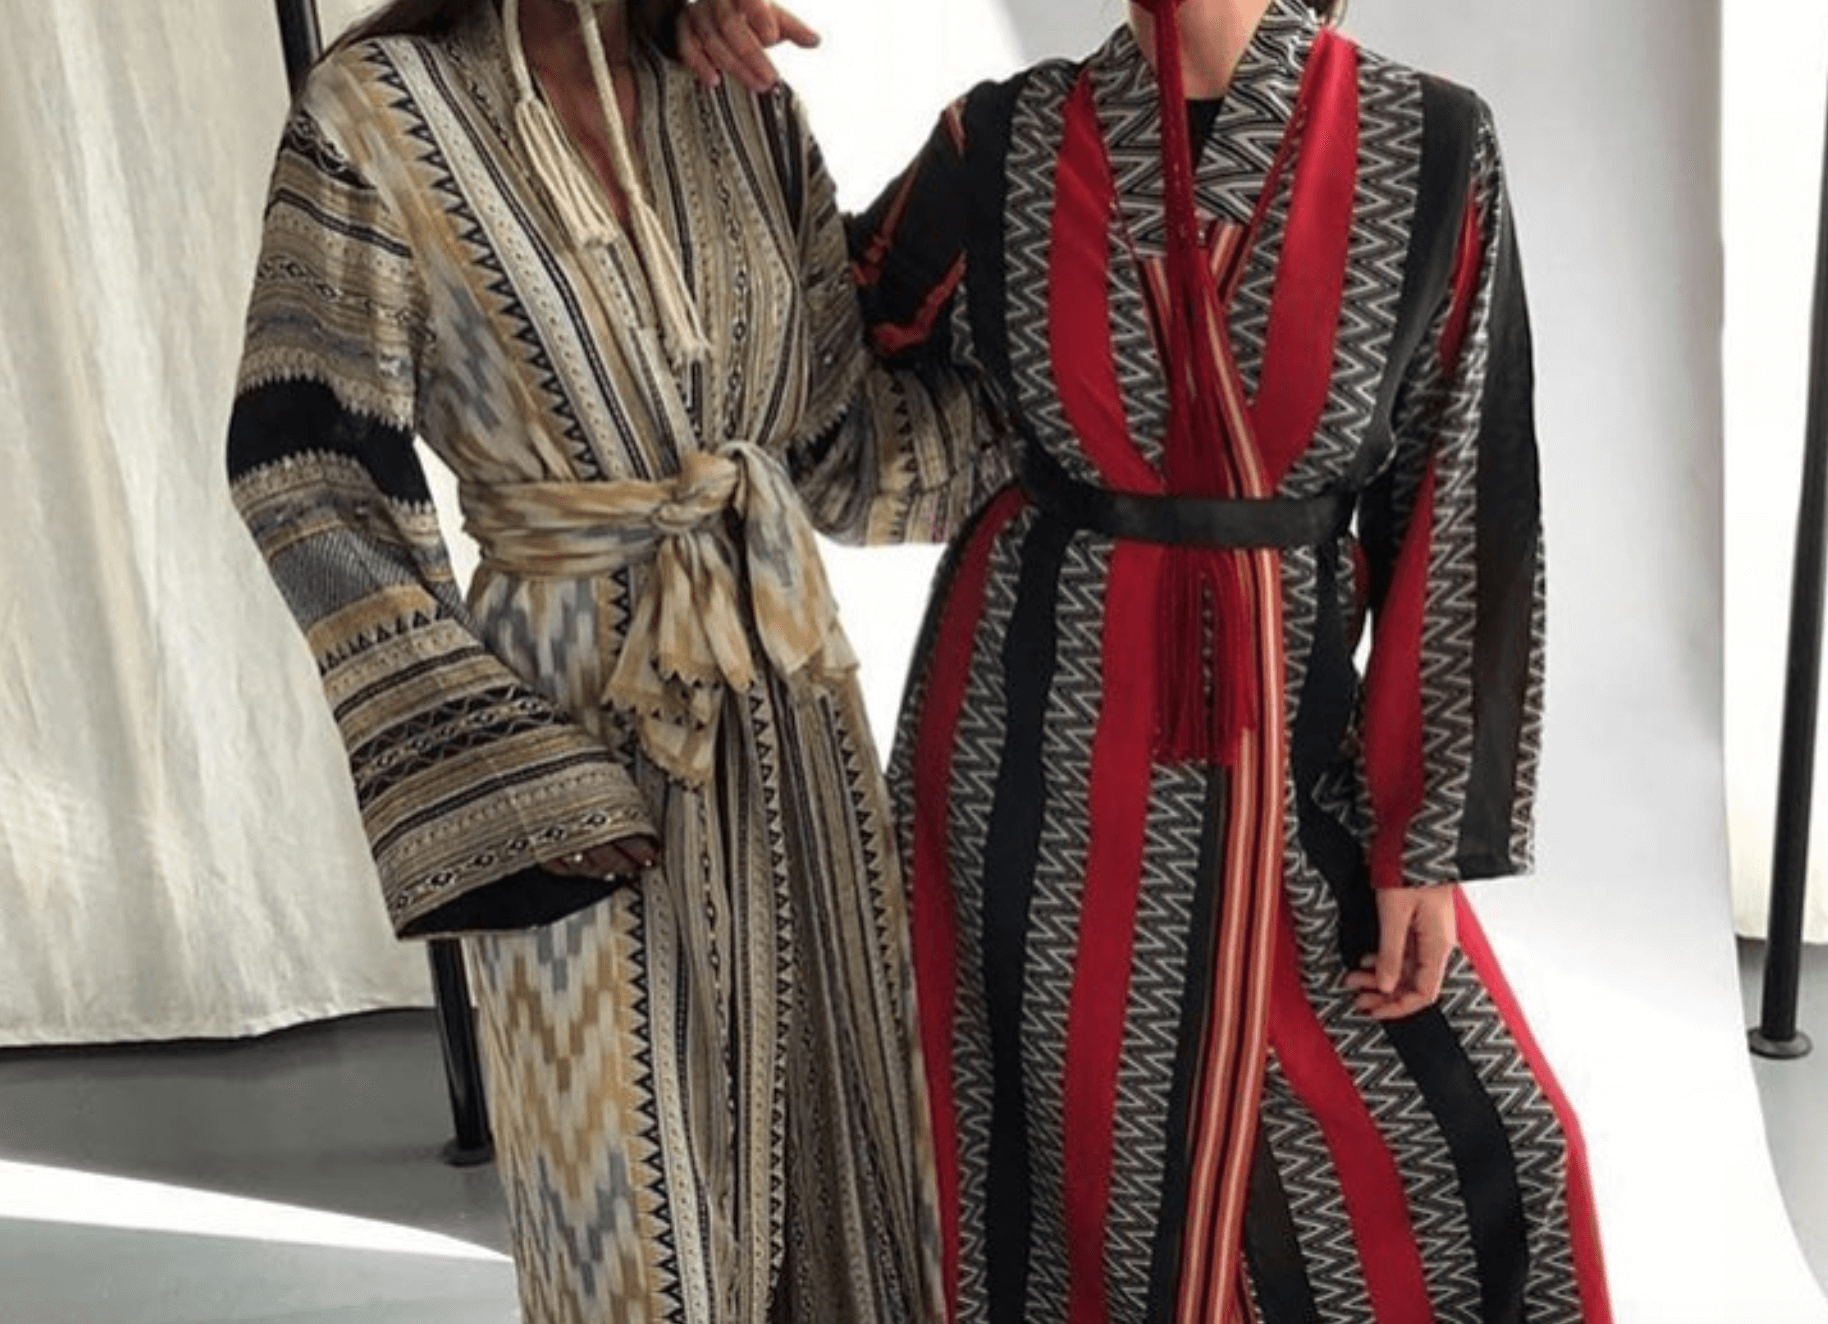 Curiosities Insider Interviews Africa Miranda Sugar Hill Market Robes